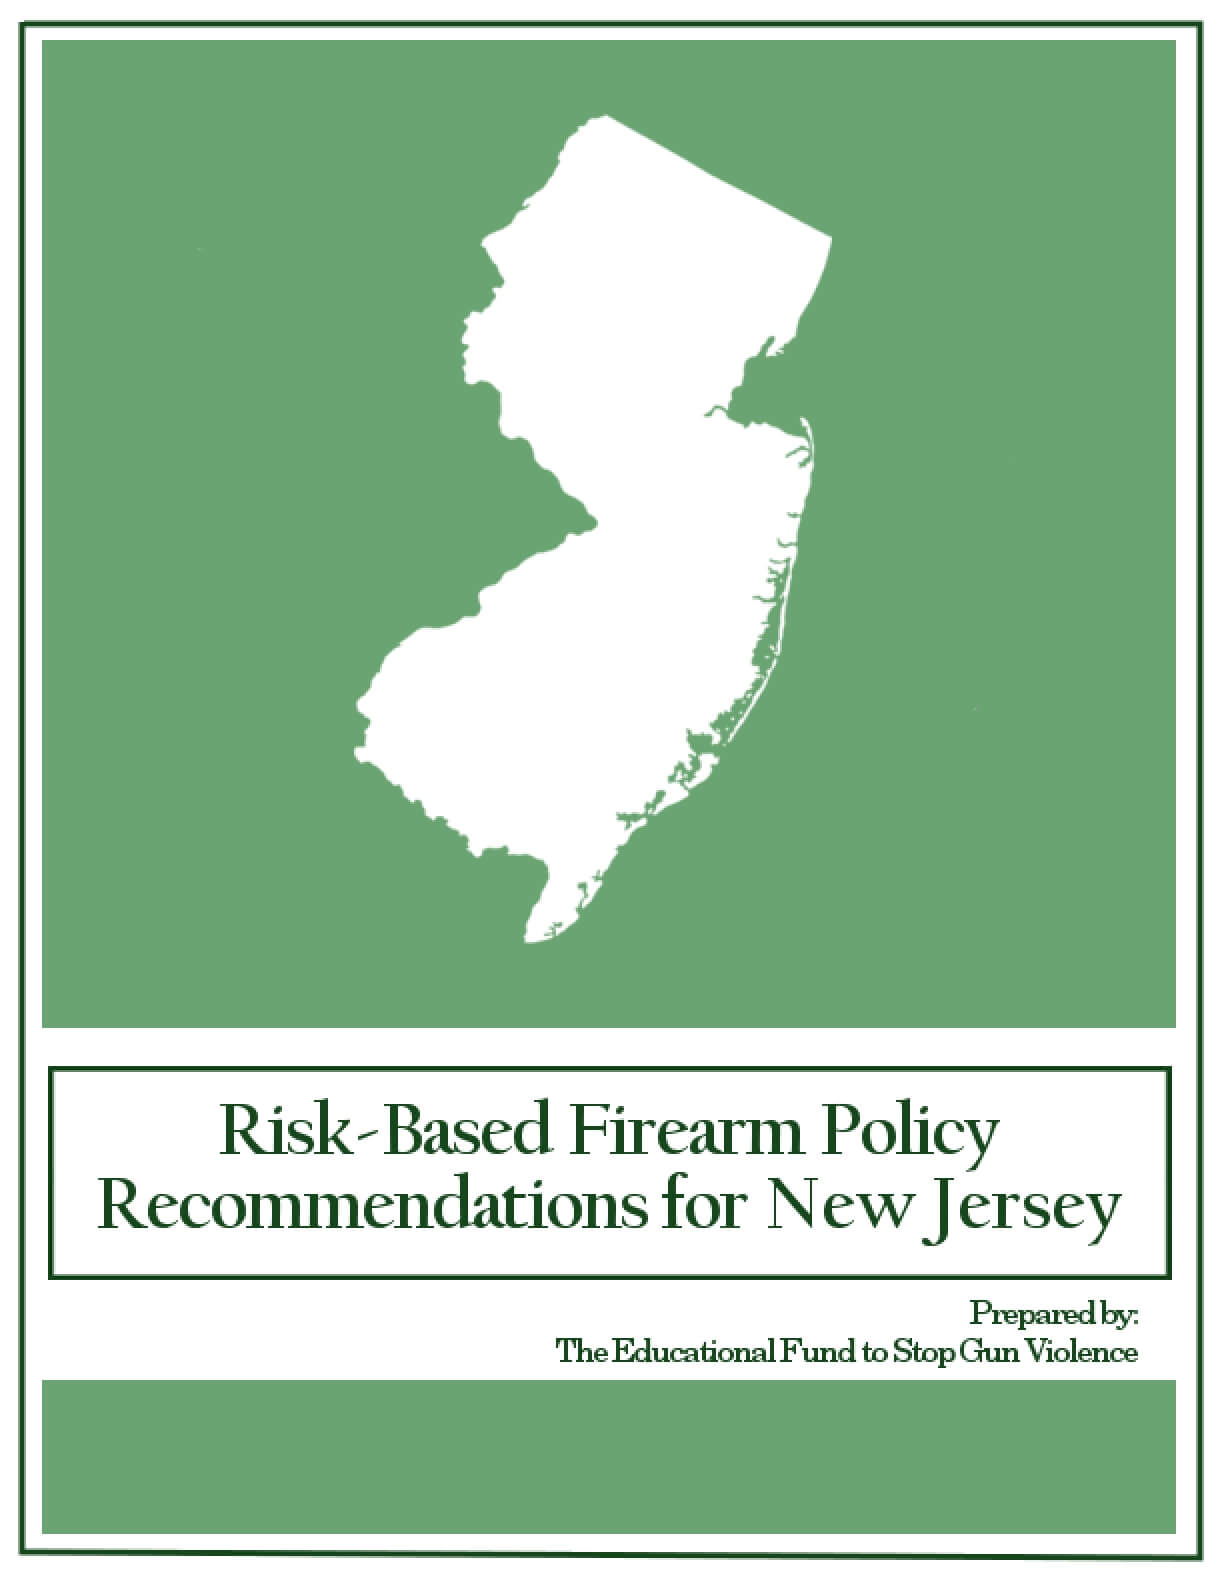 Risk-Based Firearm Policy Recommendations for New Jersey